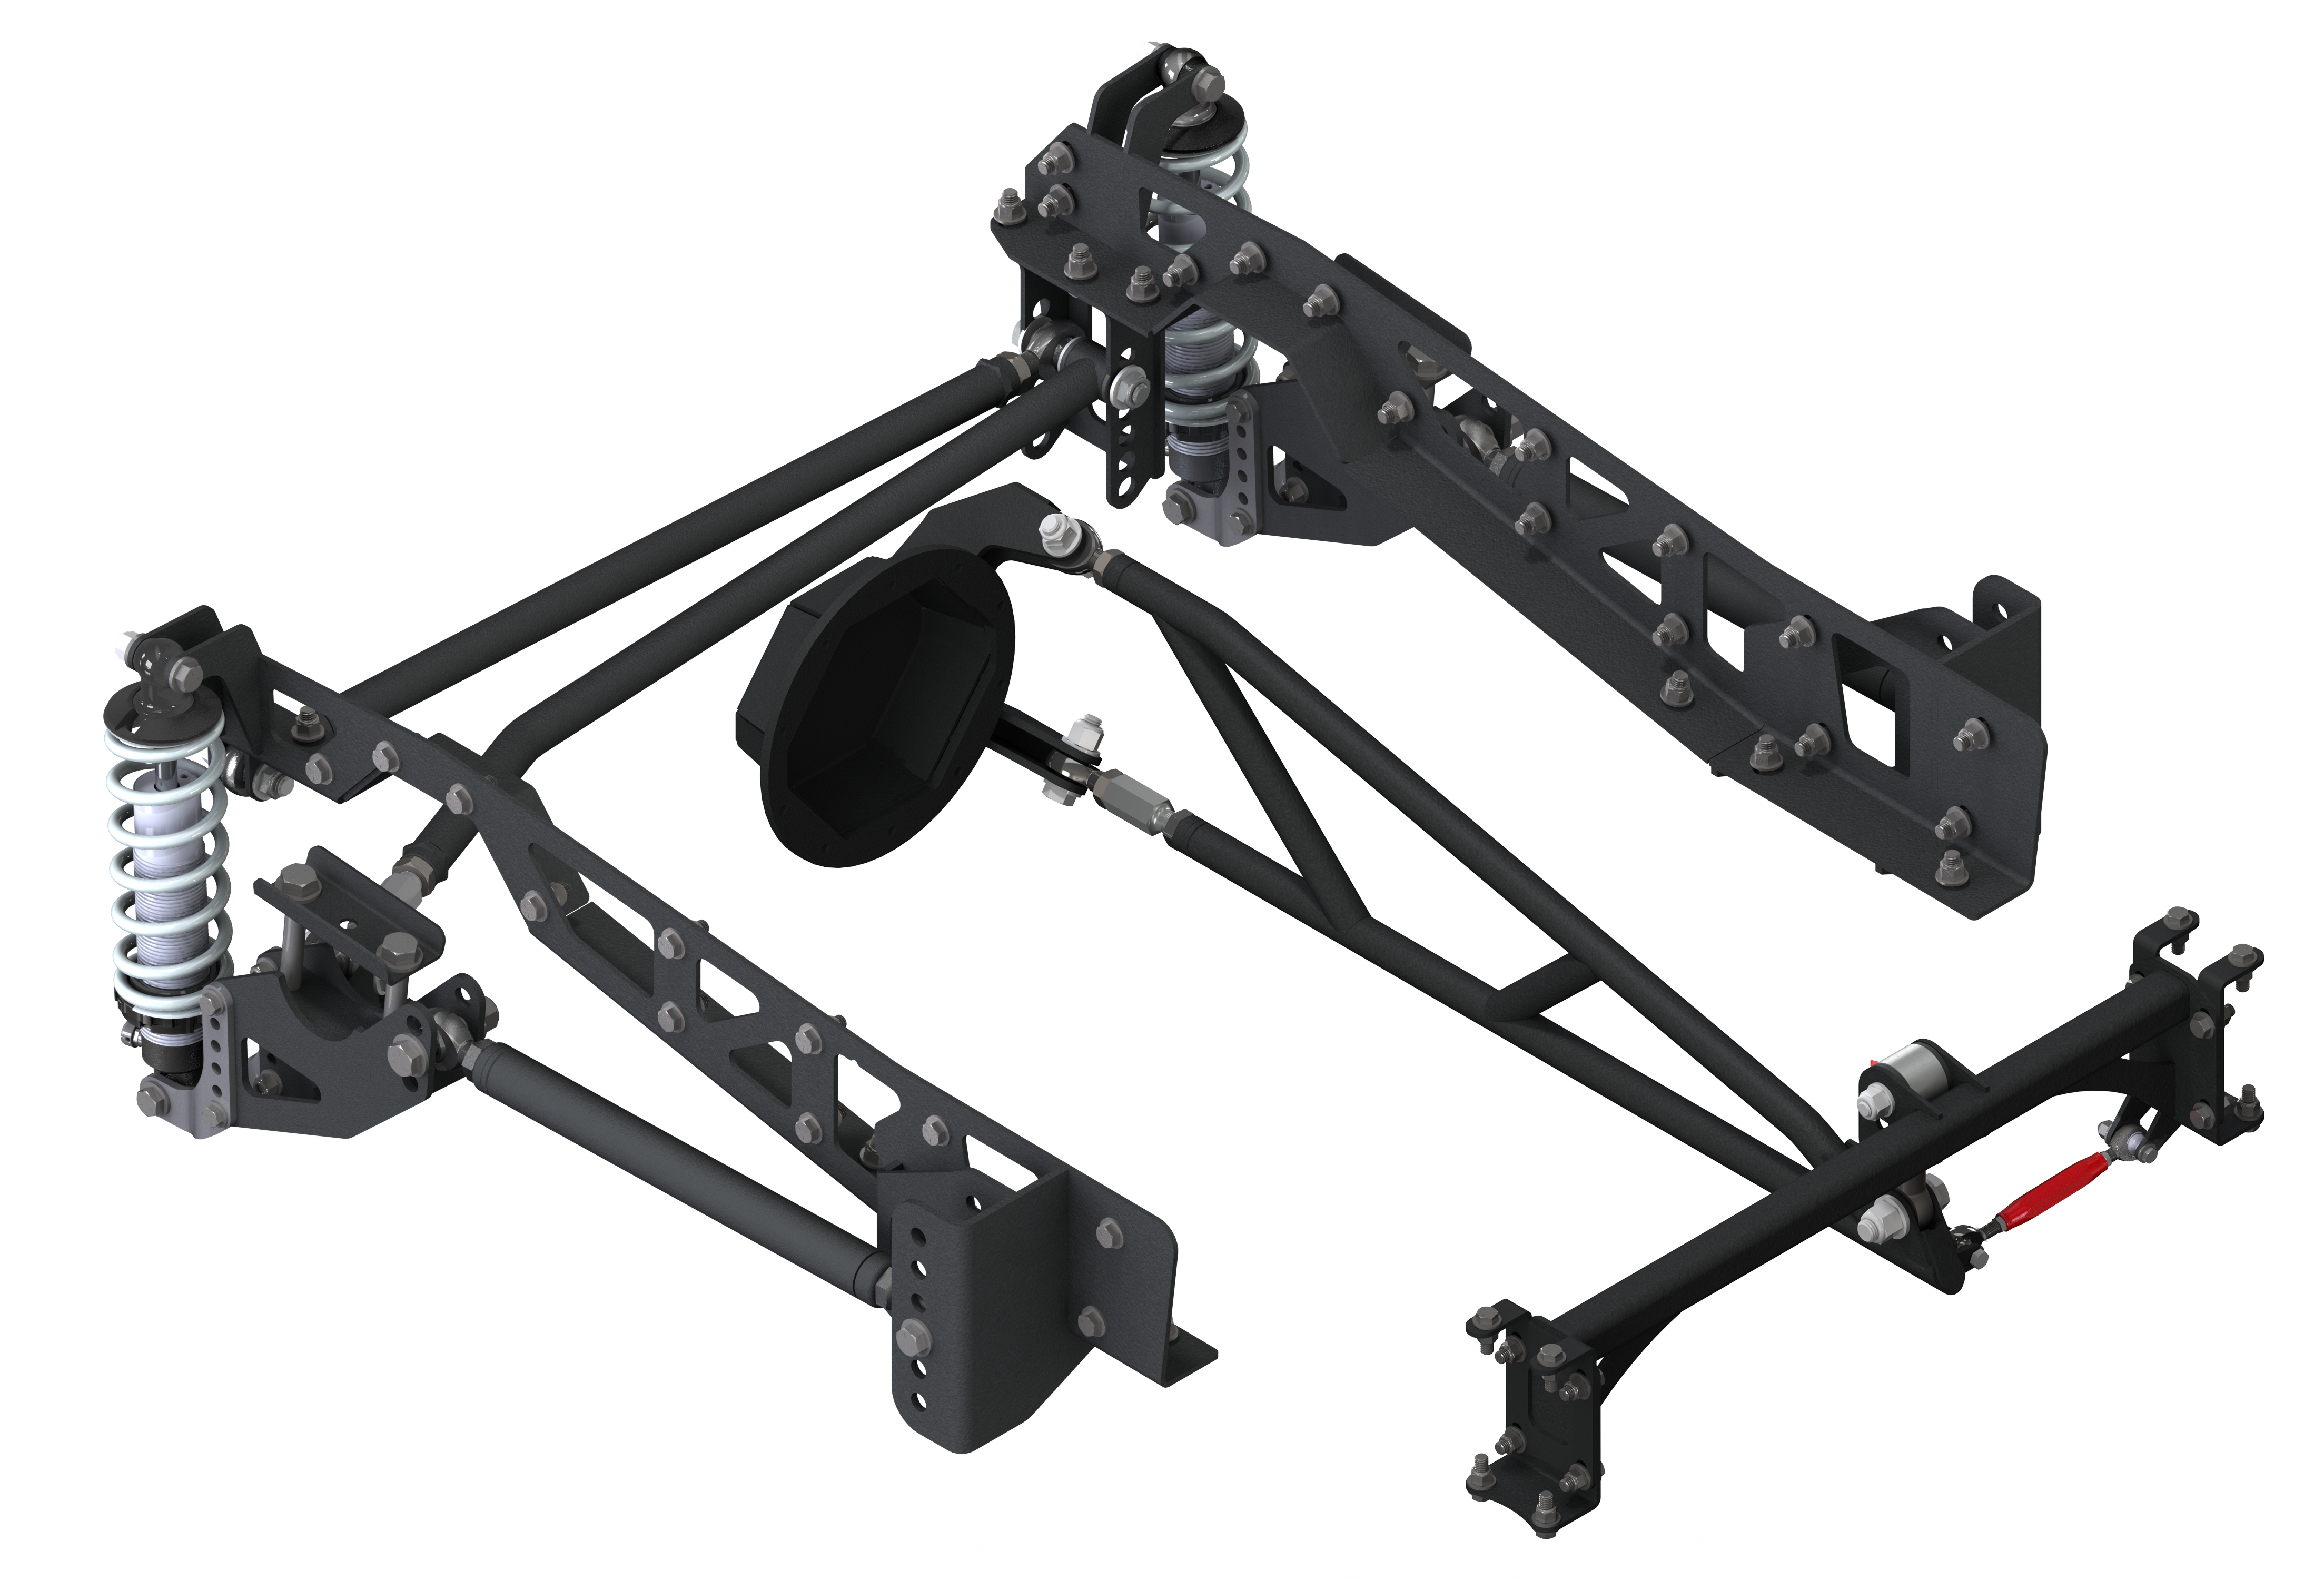 QA1 Rear Suspension System for 73-87 C10s